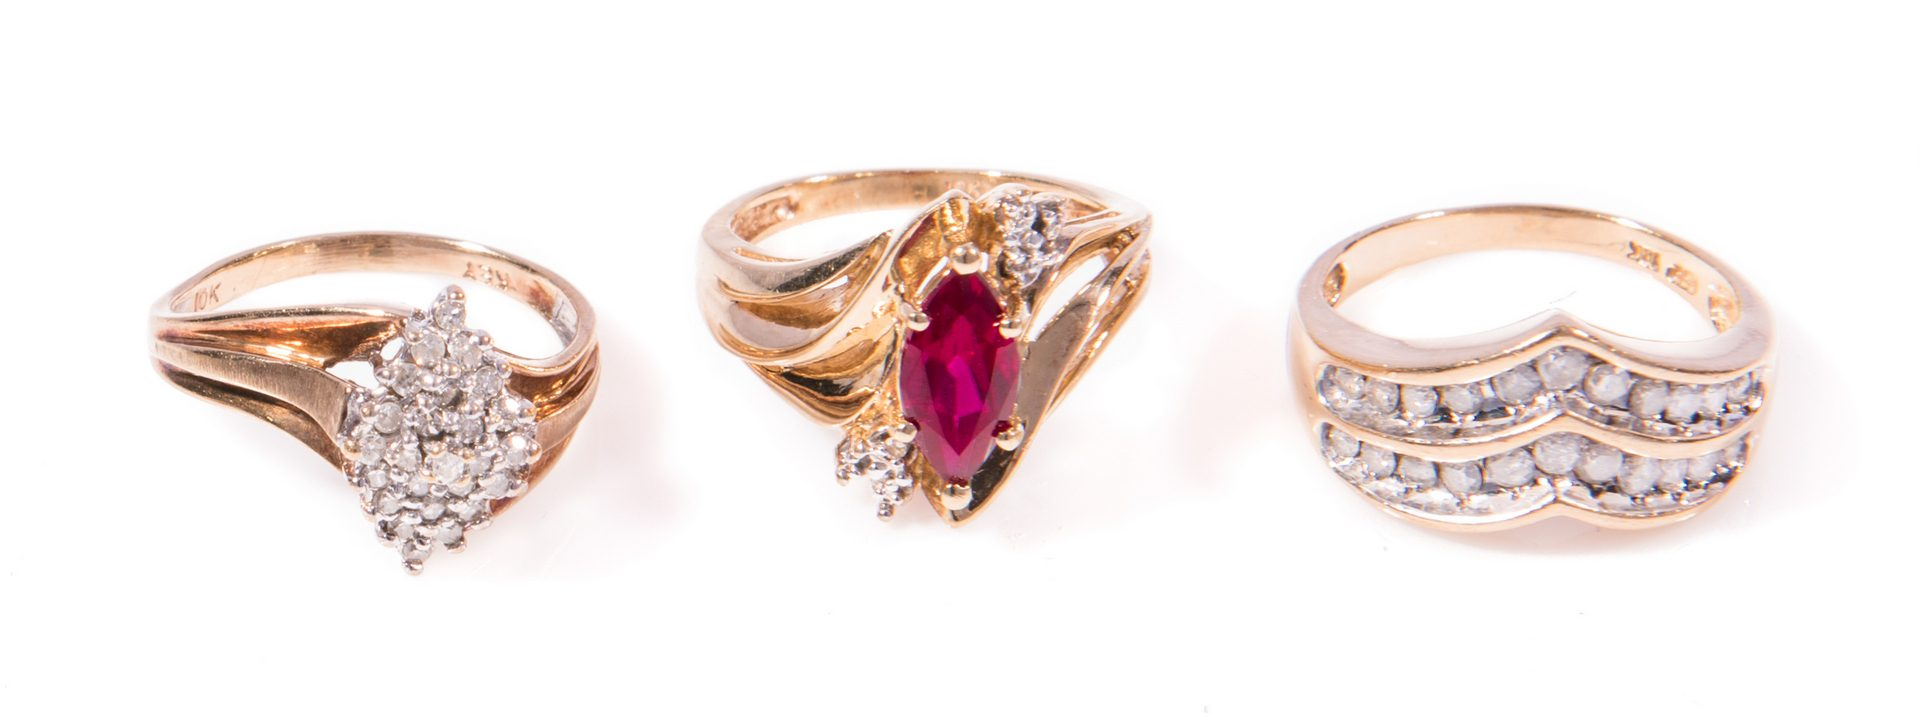 Lot 32: Group of 5 Gold Cocktail Rings